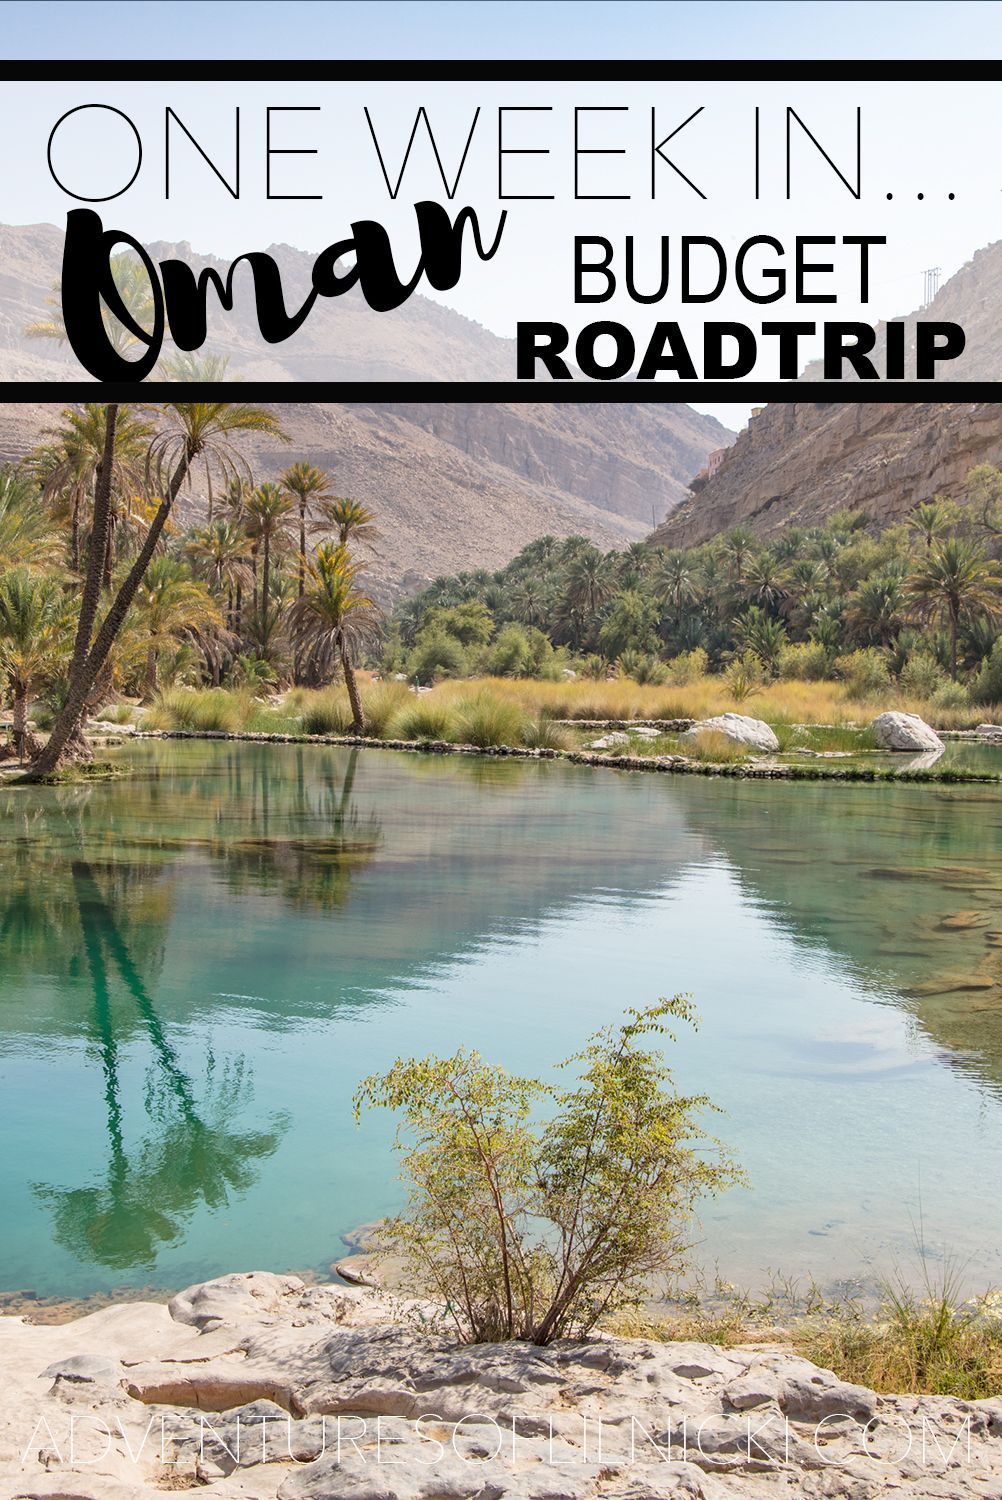 How To Spend One Week In Oman A Self Drive Budget Itinerary Reise Oman Reisen Arabische Halbinsel